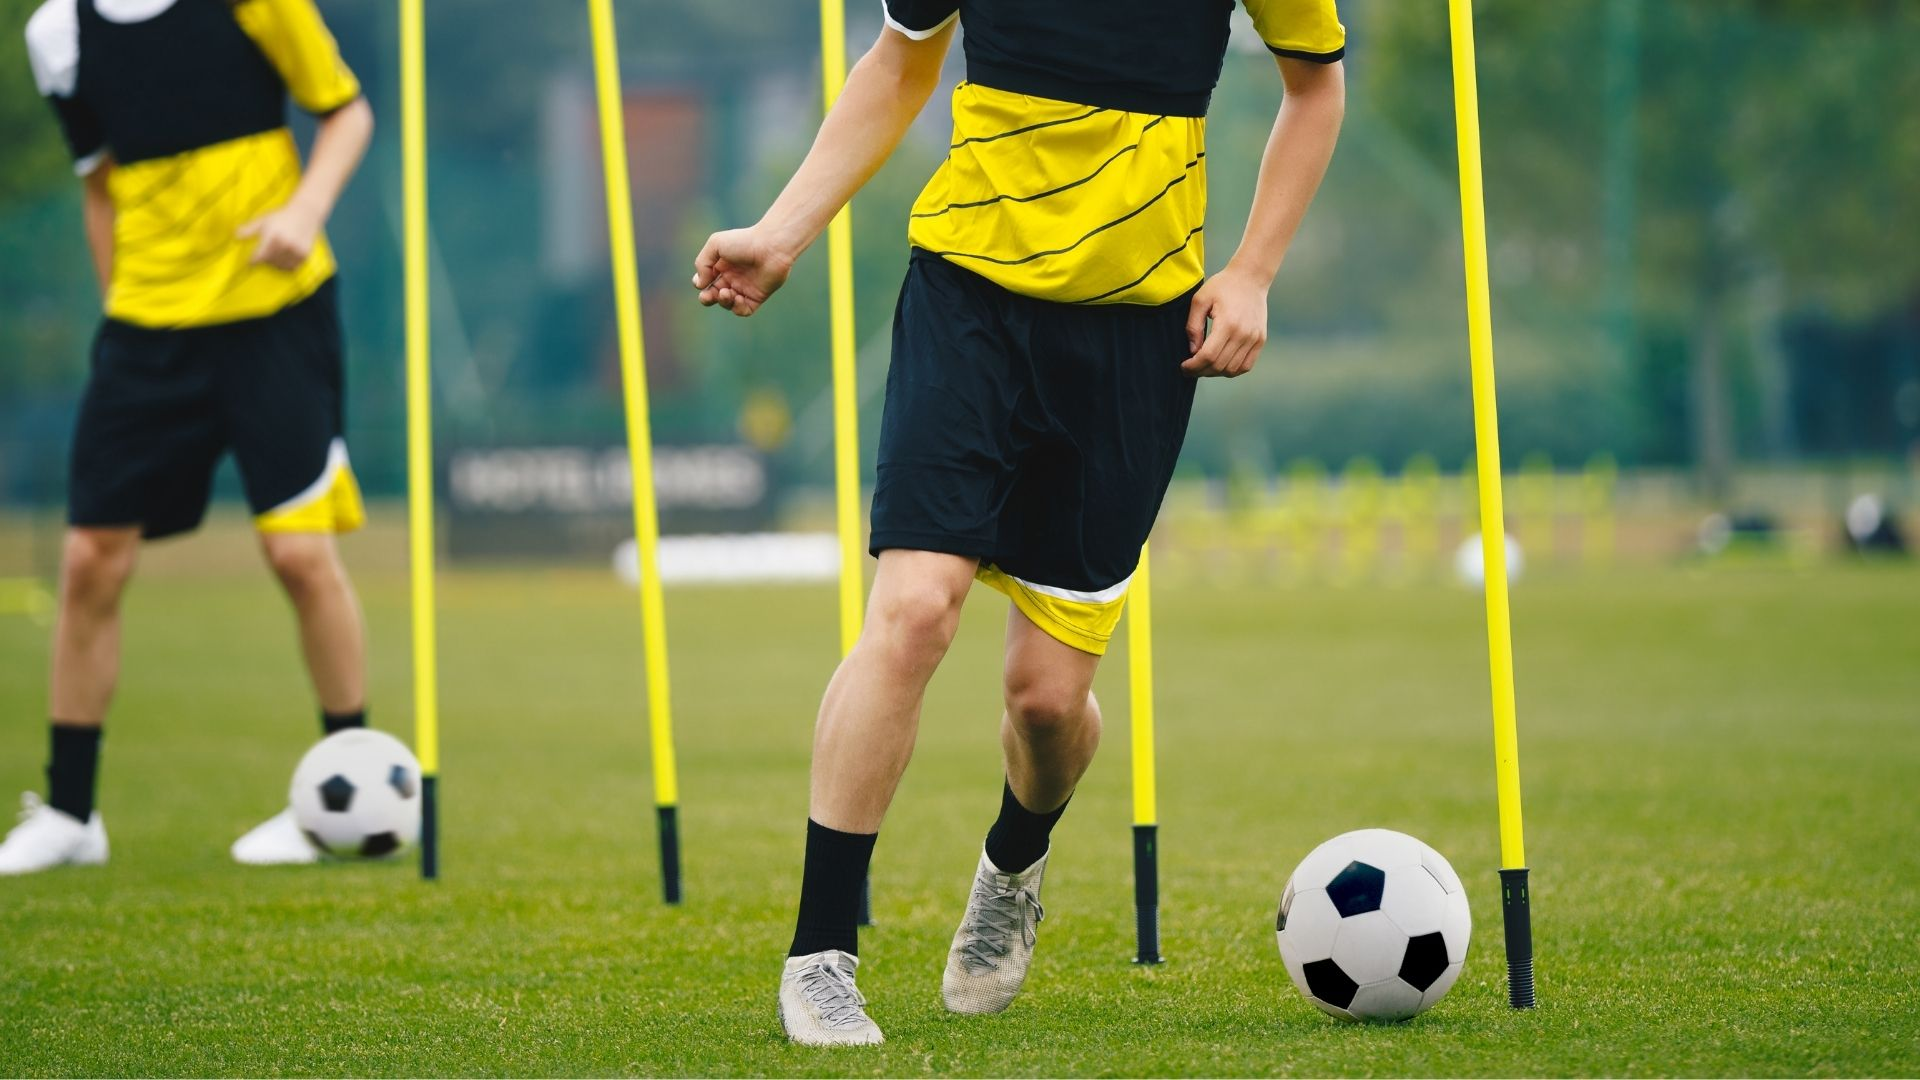 prepare for youth soccer tryouts